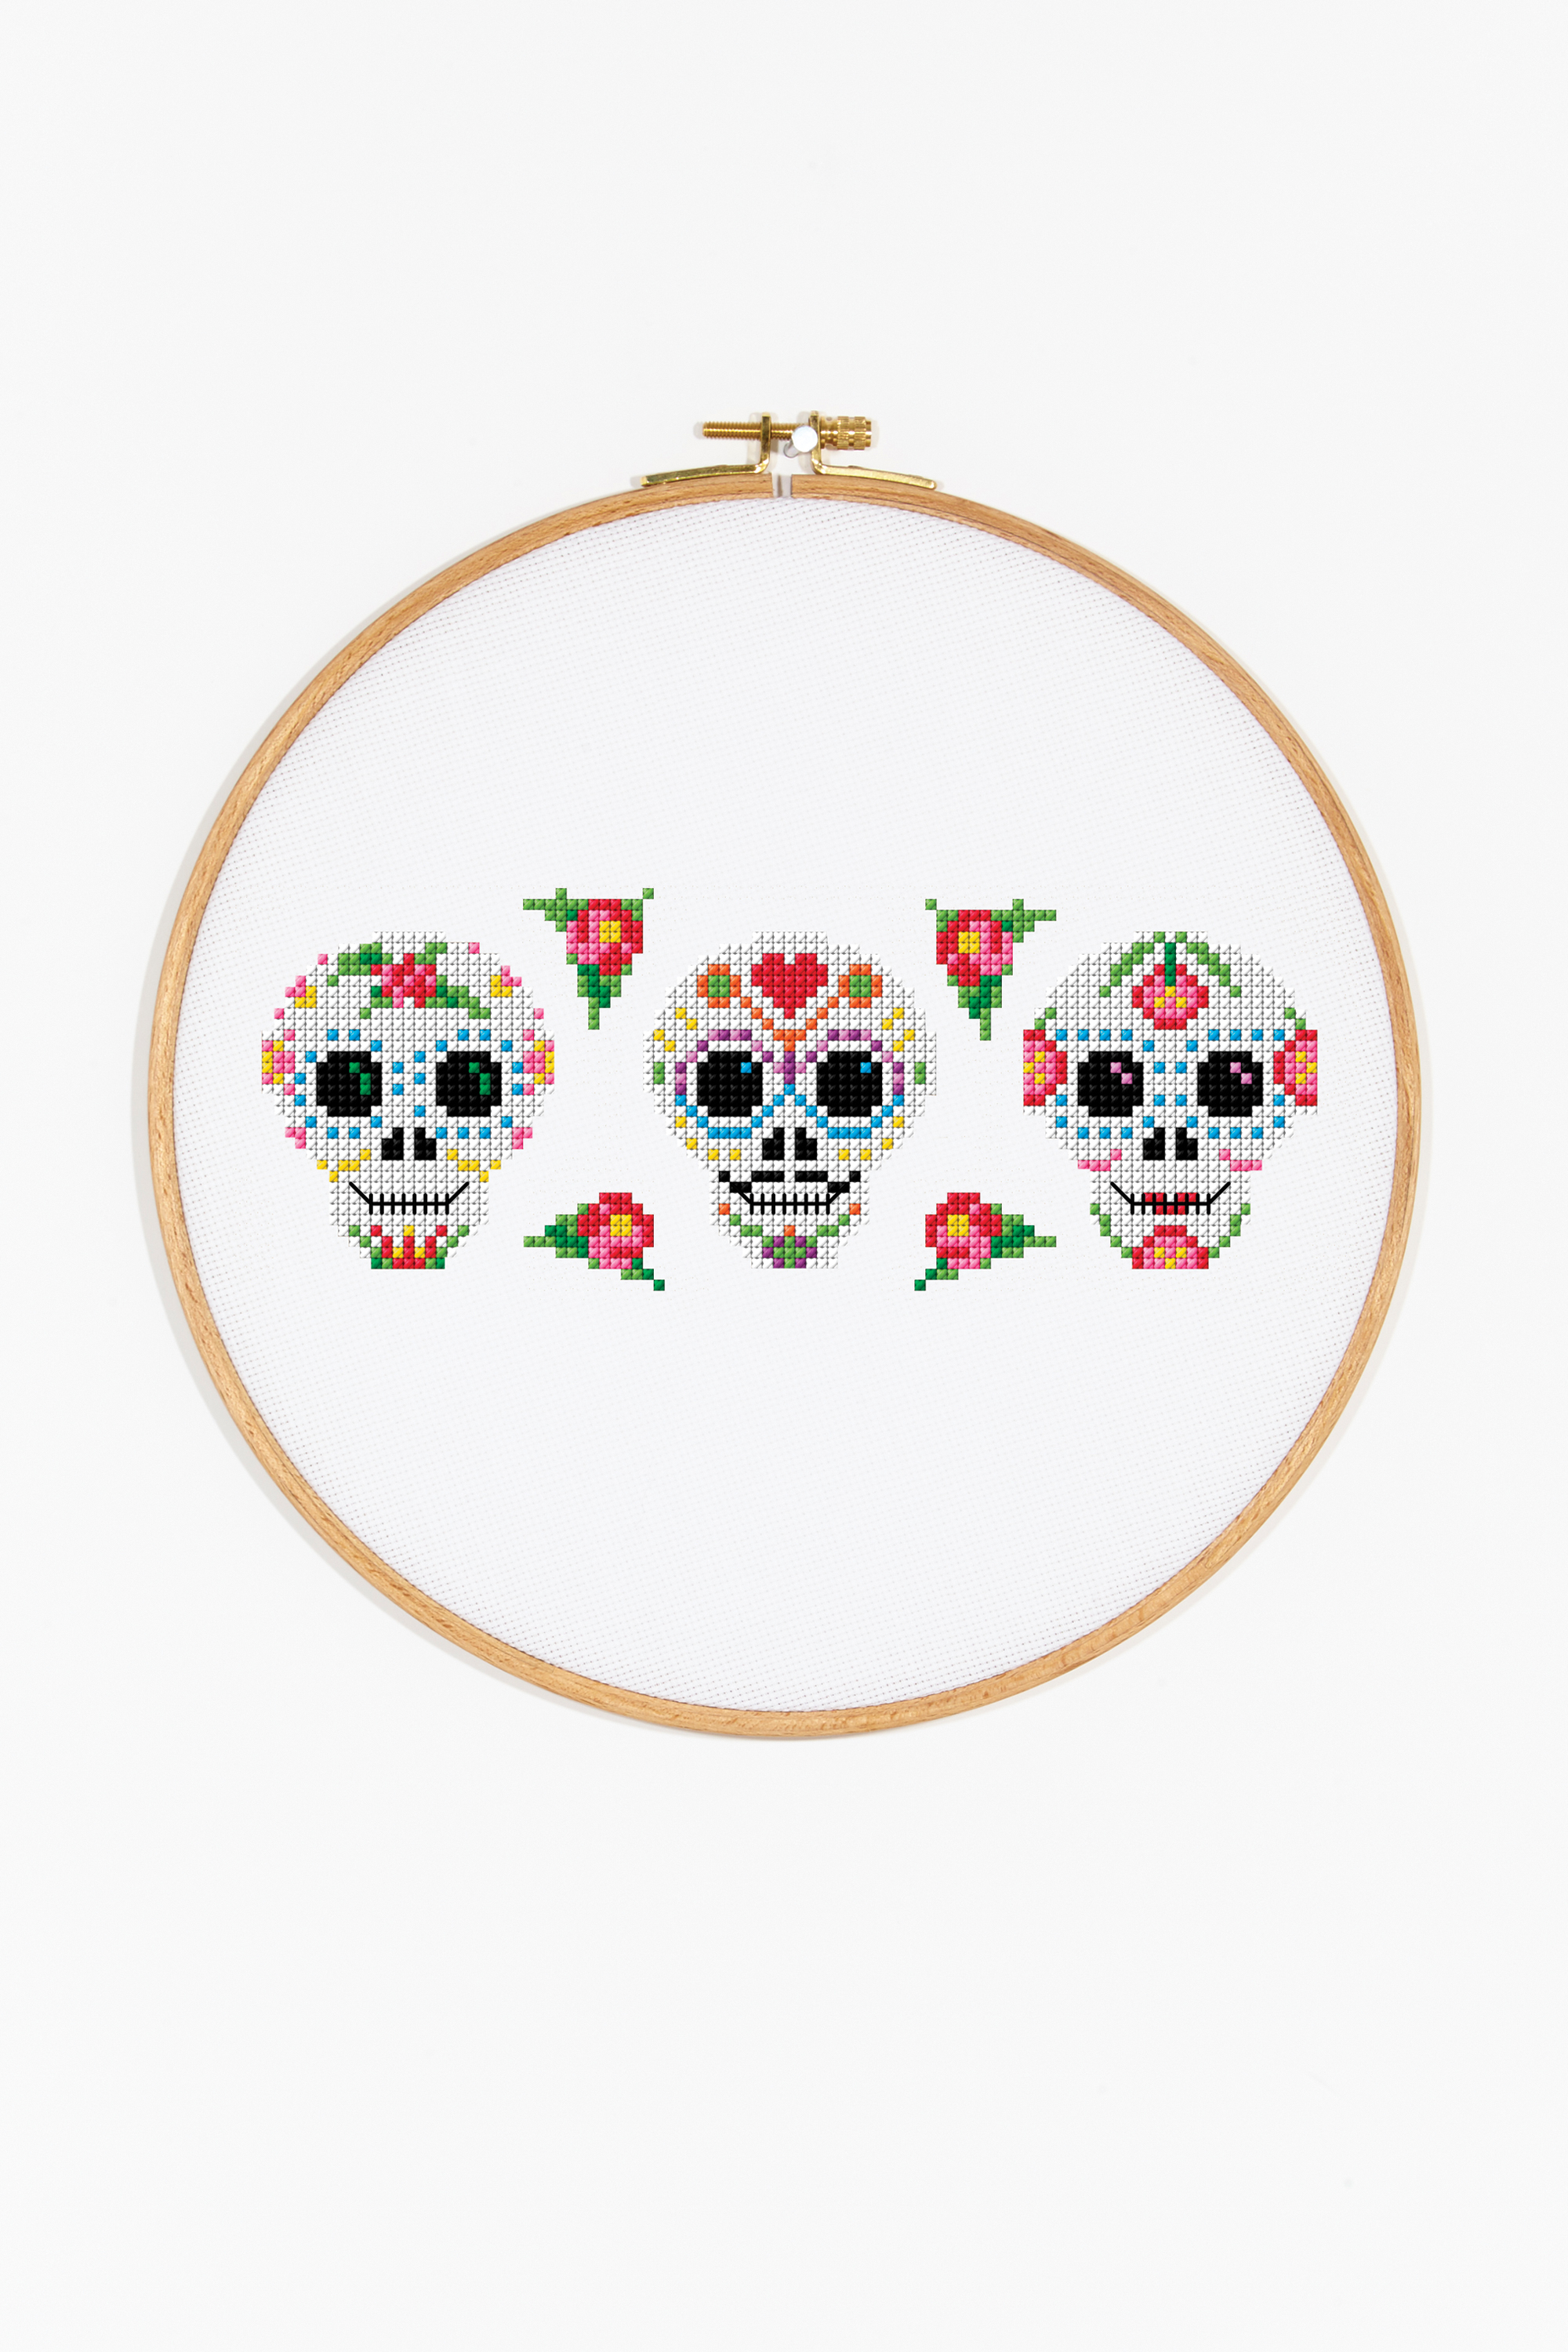 Mexican Day Of The Dead Pattern Free Cross Stitch Patterns Dmc